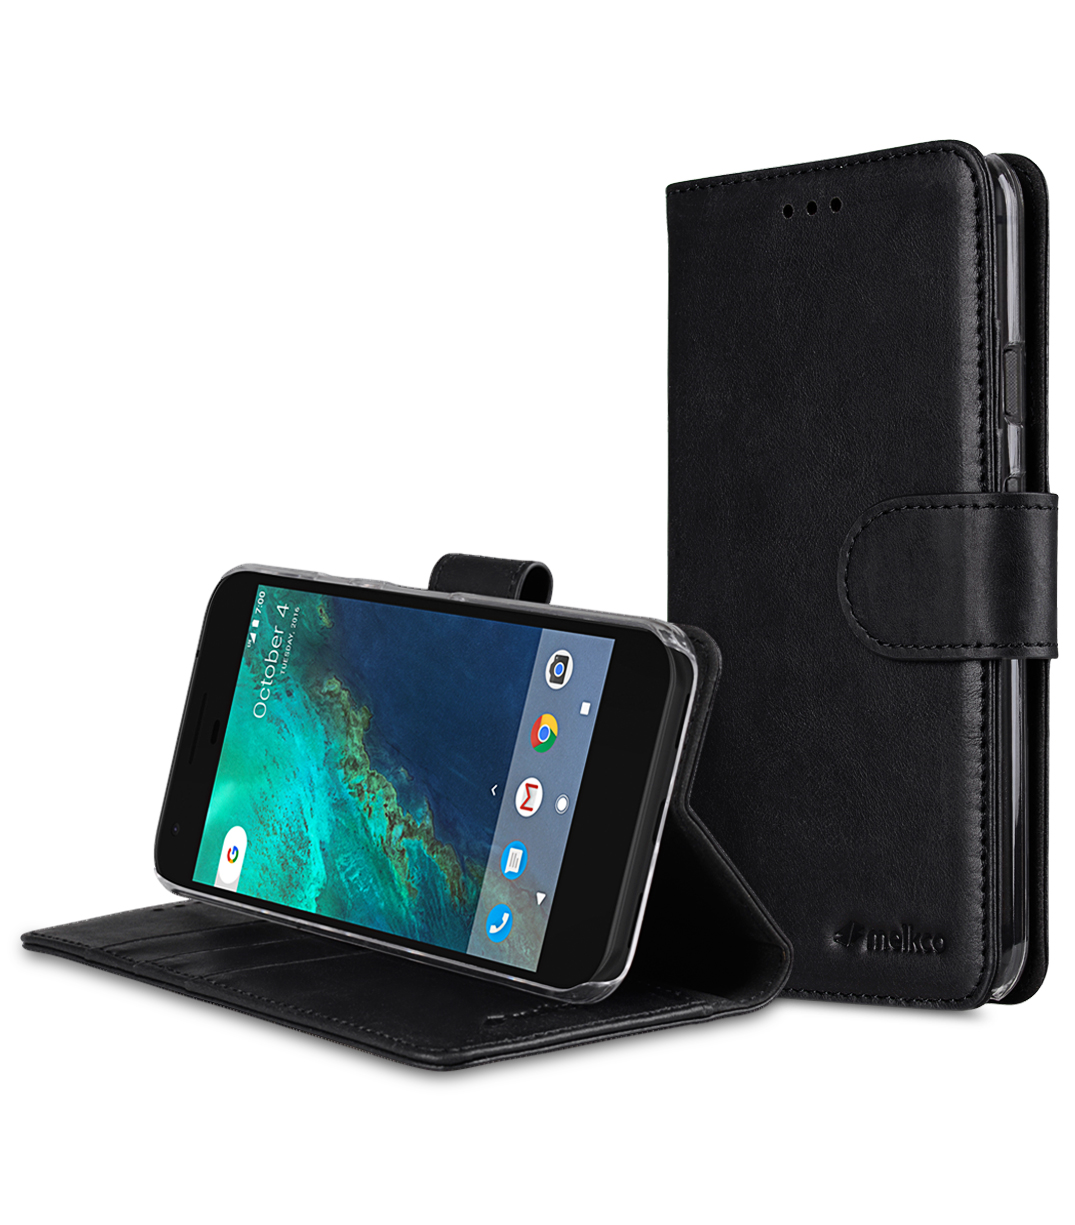 Premium Leather Case for Google Pixel - Wallet Book Type with Stand Function